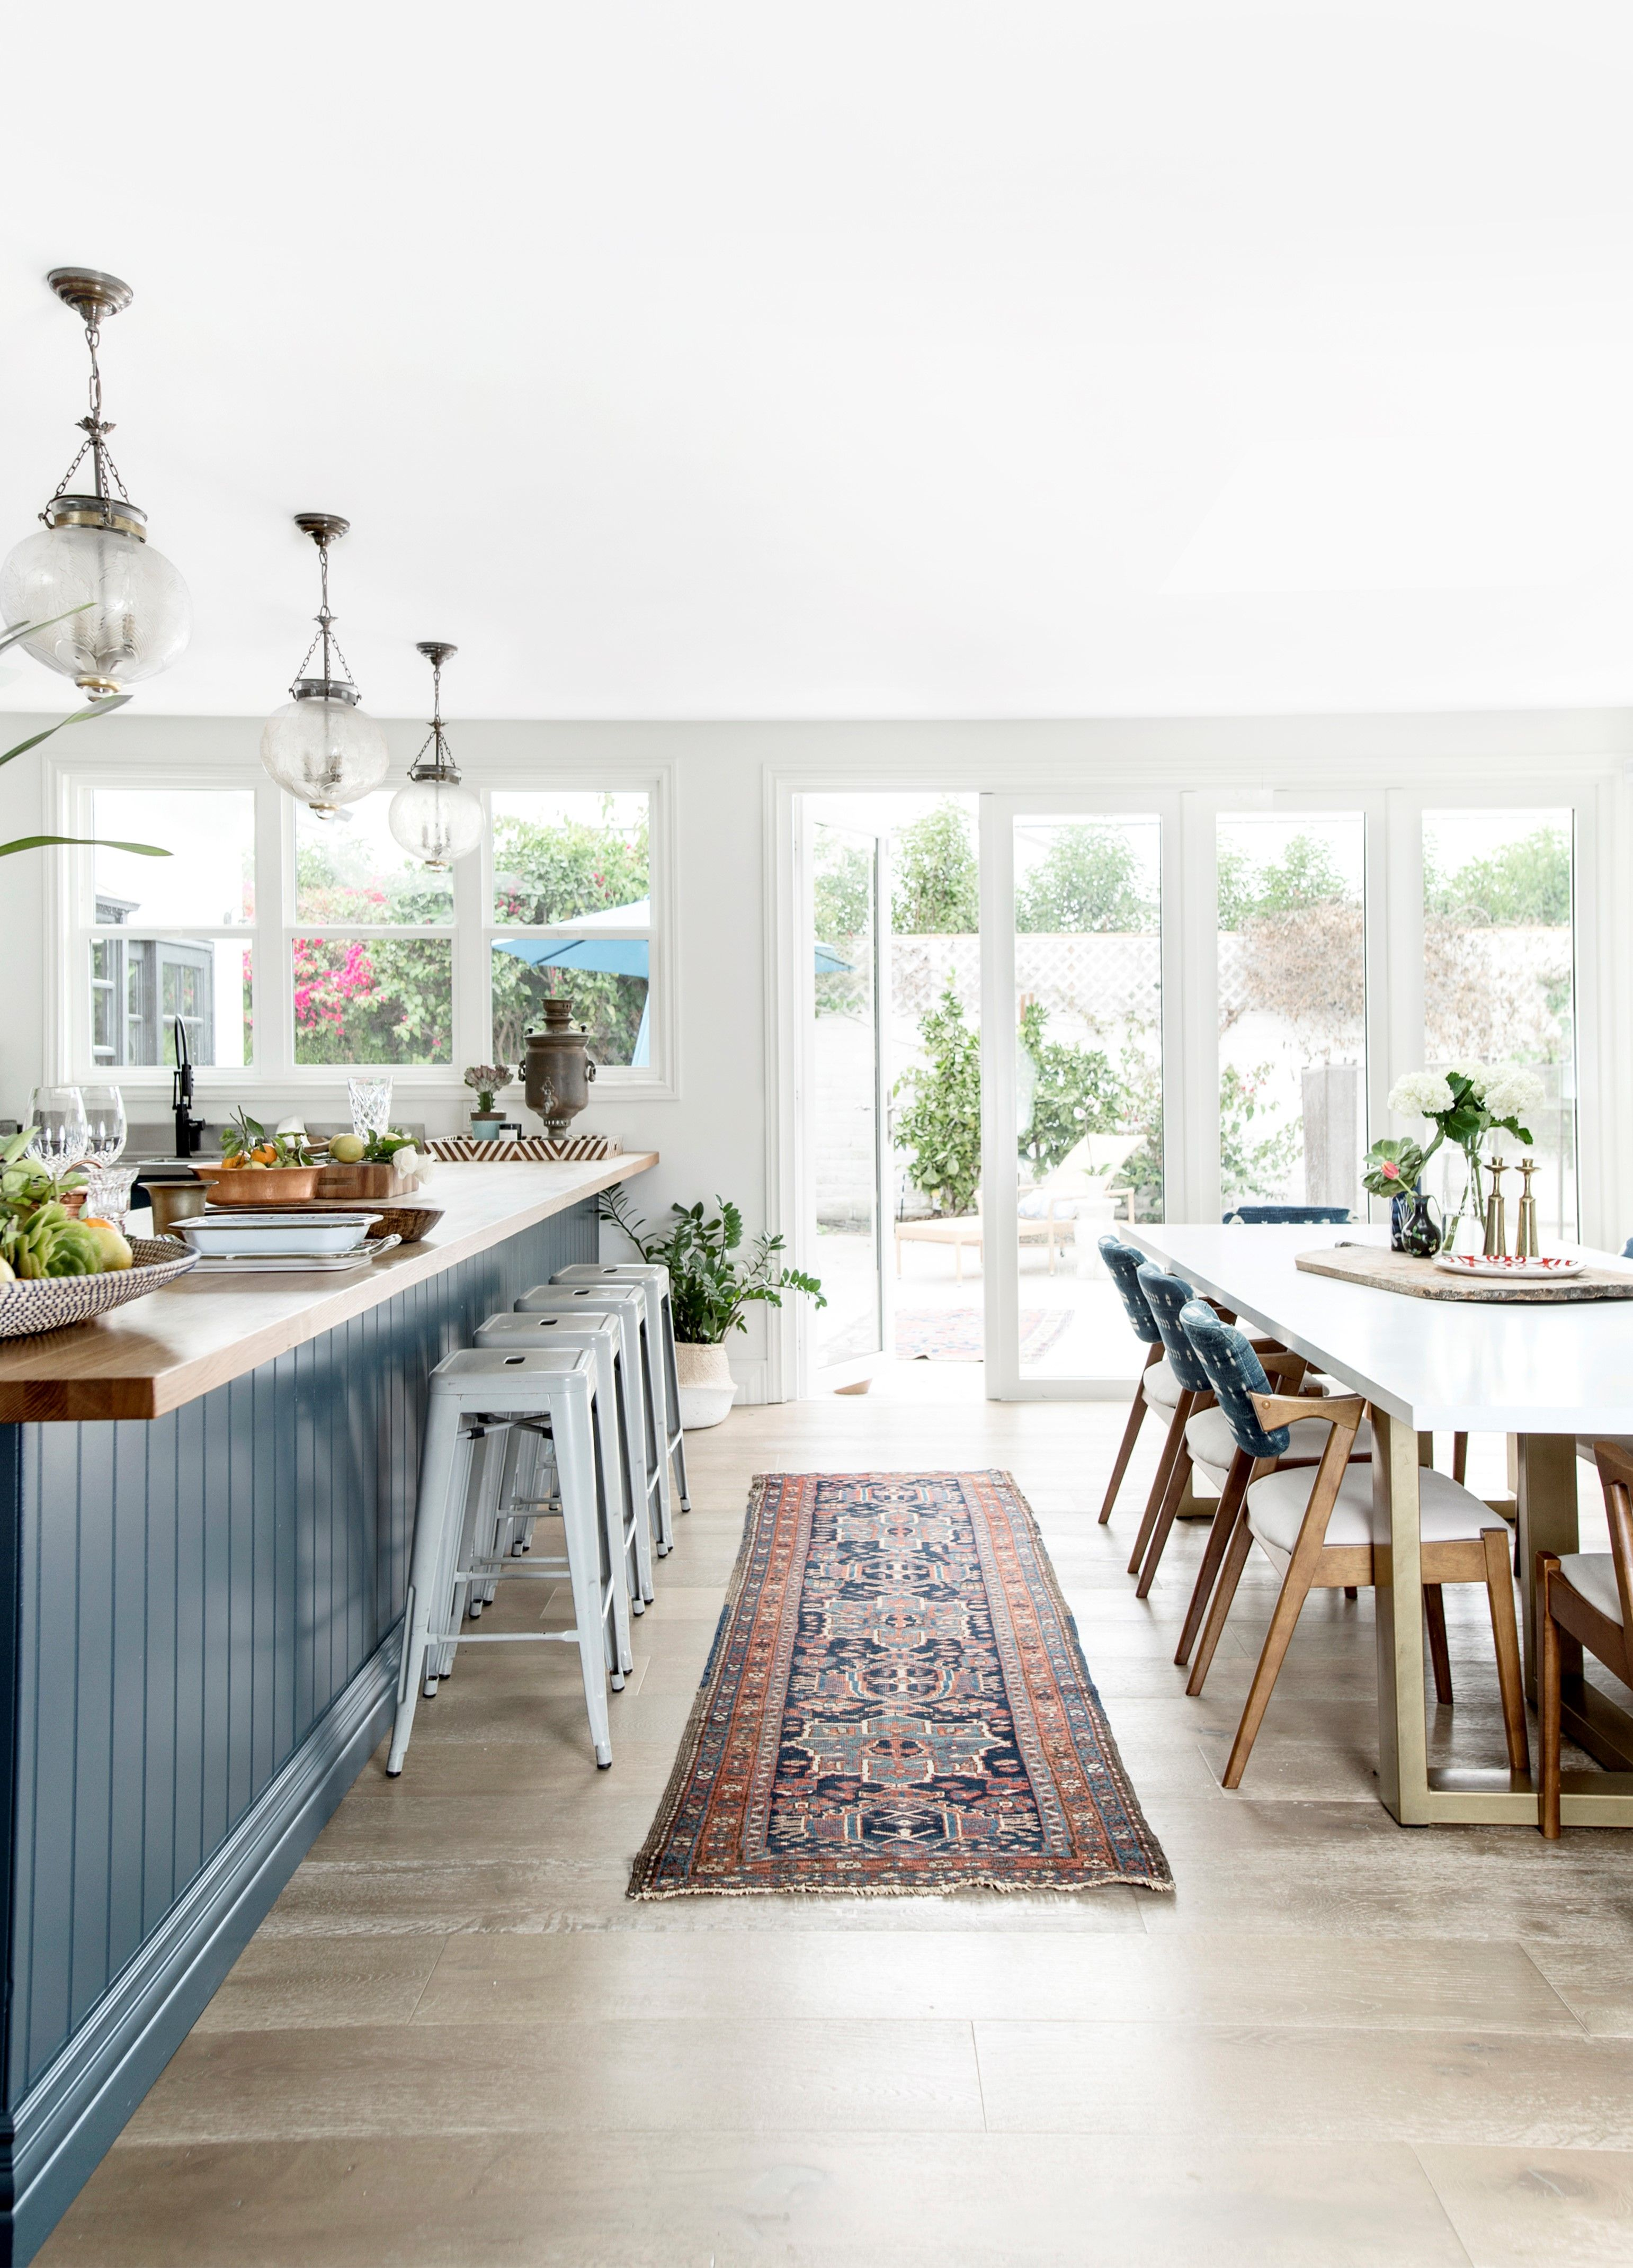 Pin by Corre Marie on KITCHENS in 2018